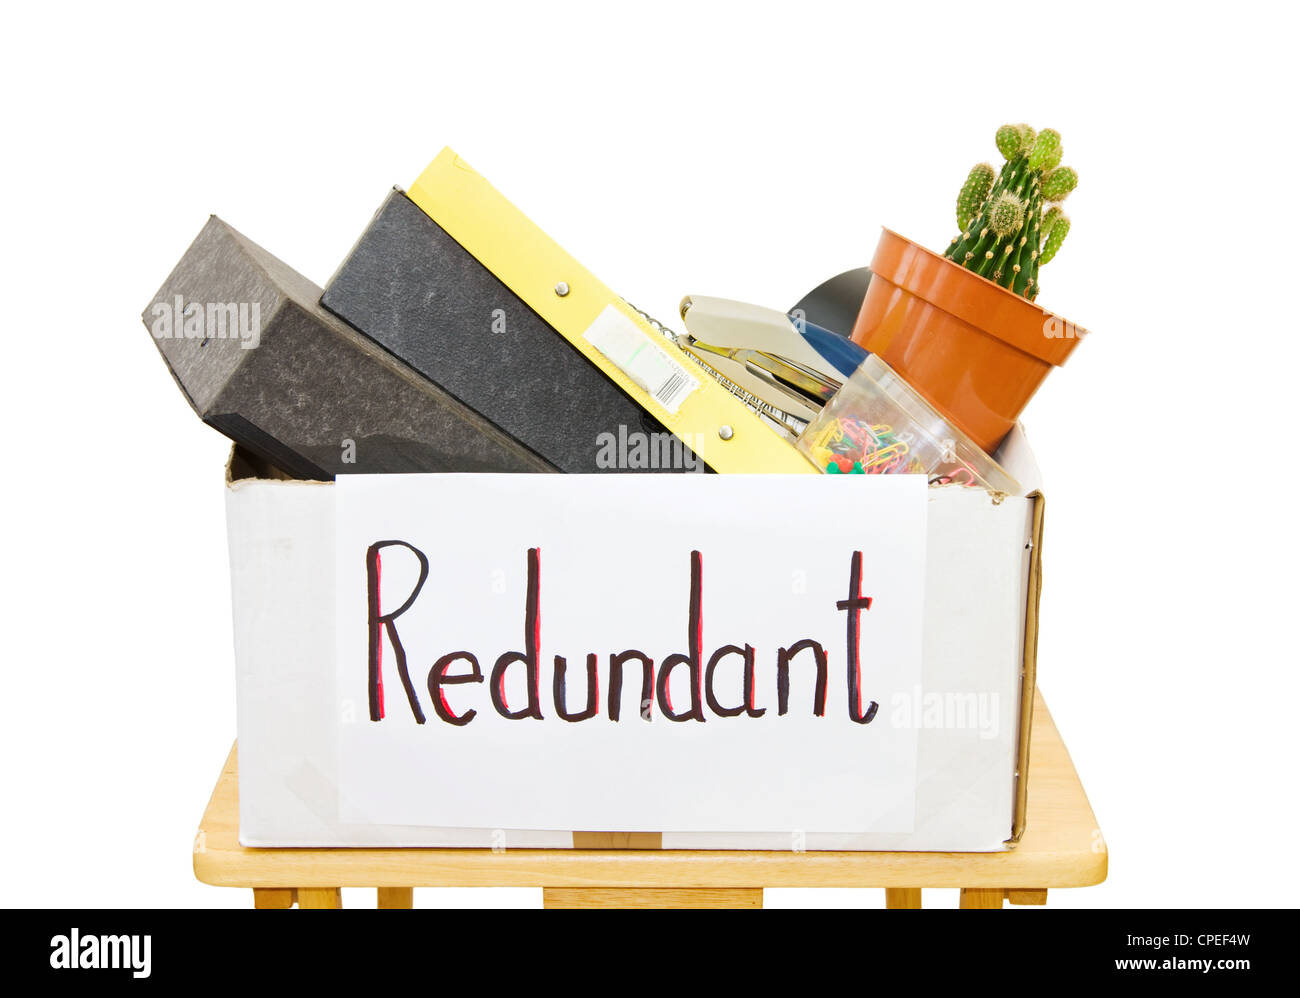 Made redundant at work as a result of the economic crisis. Isolated over white background. - Stock Image